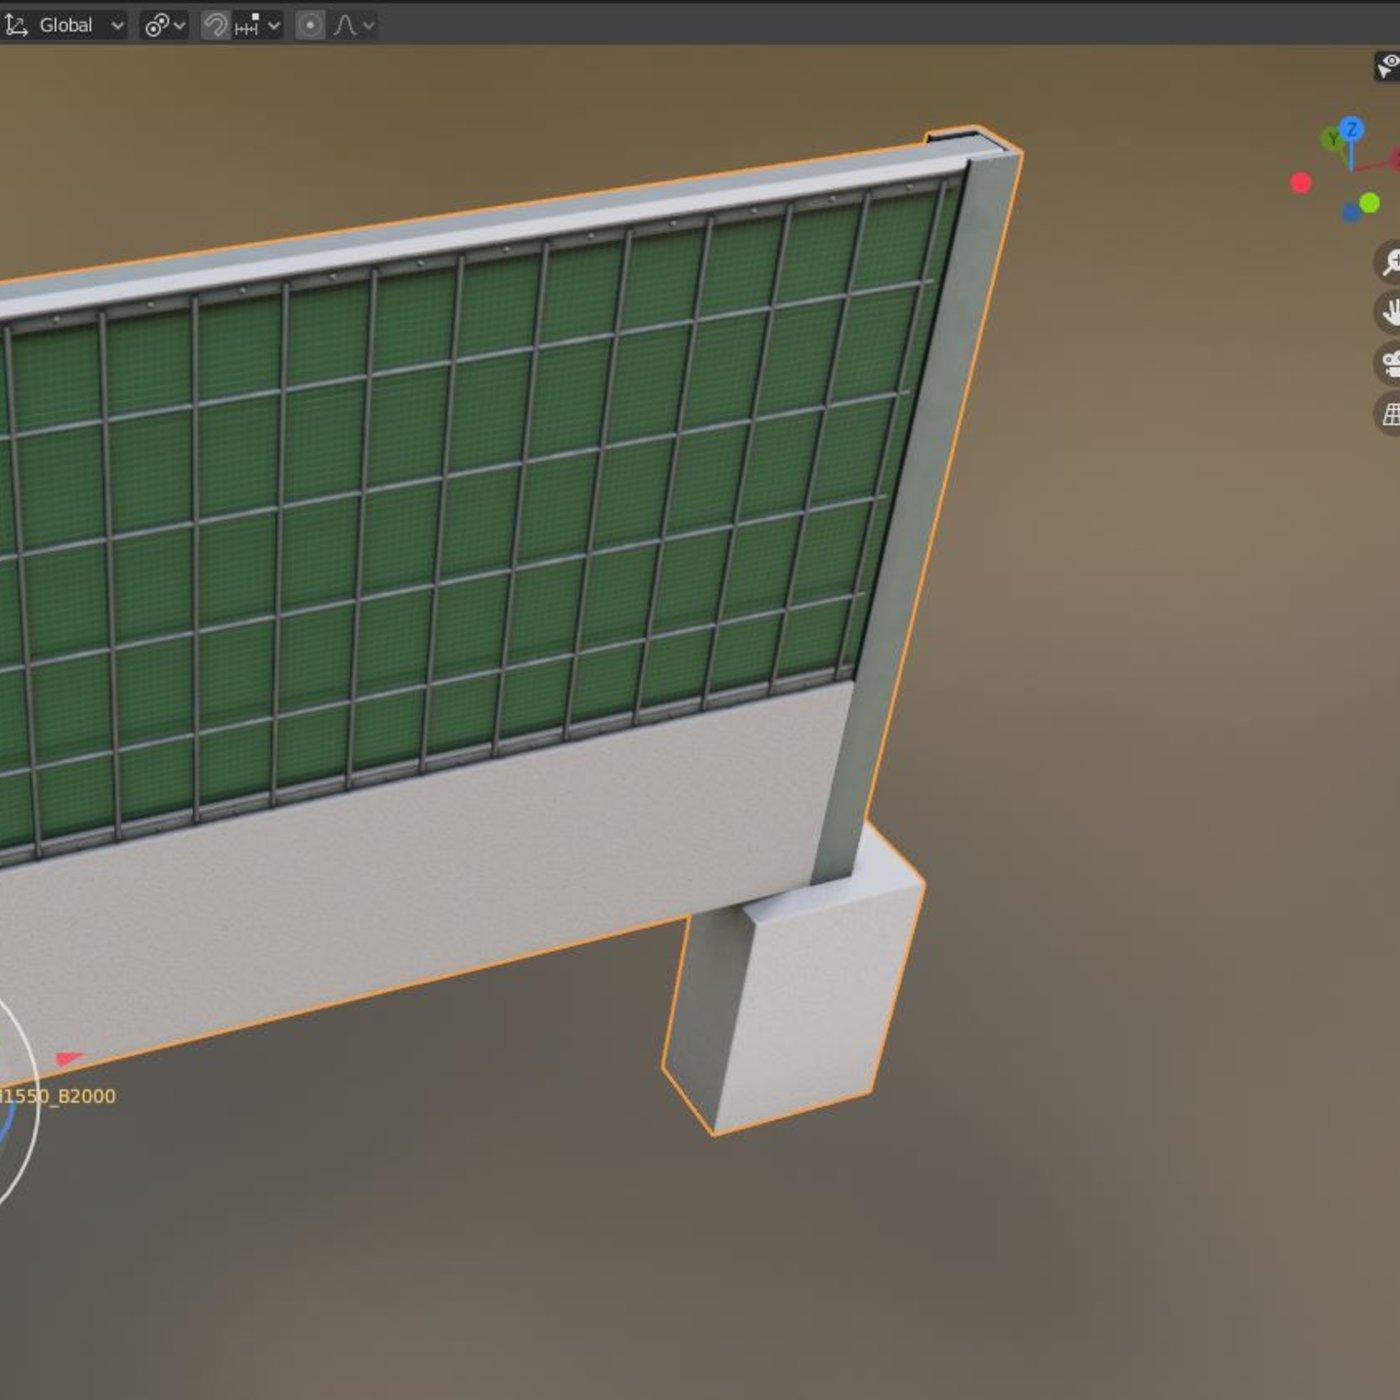 Modular Noise Barriers 2 (Low-Poly)